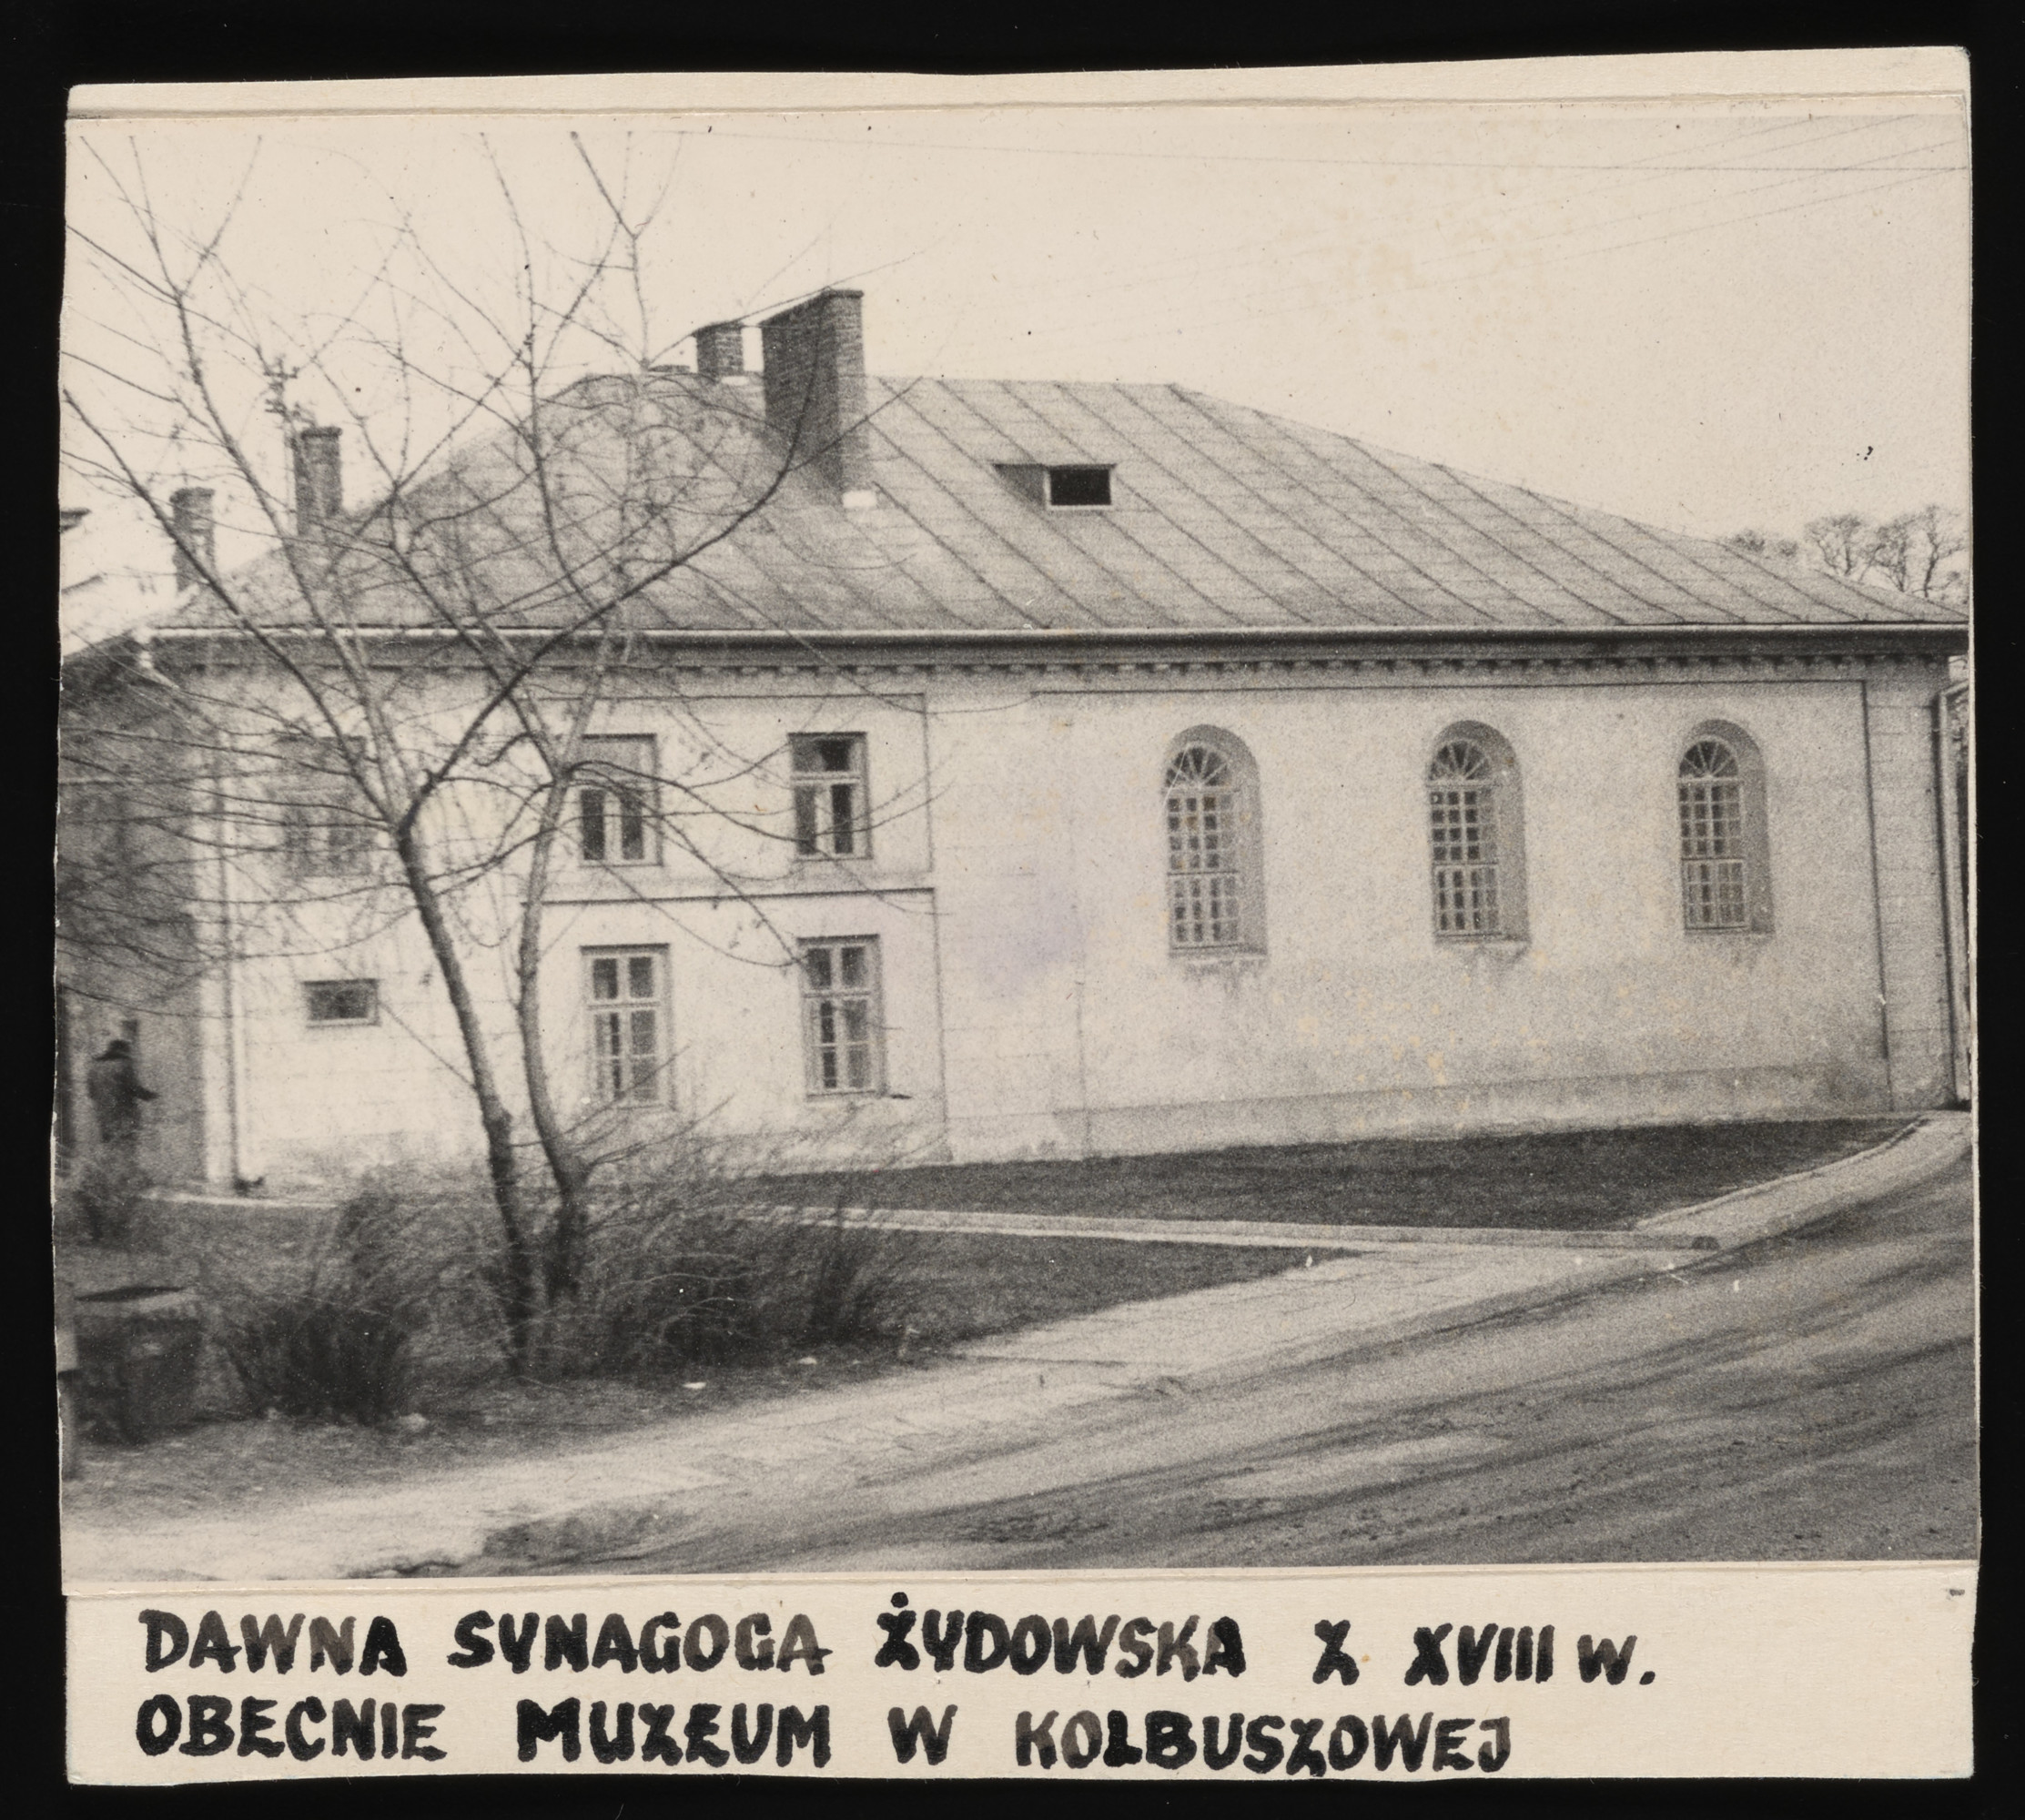 View of the exterior of the synagogue in Kolbuszowa.